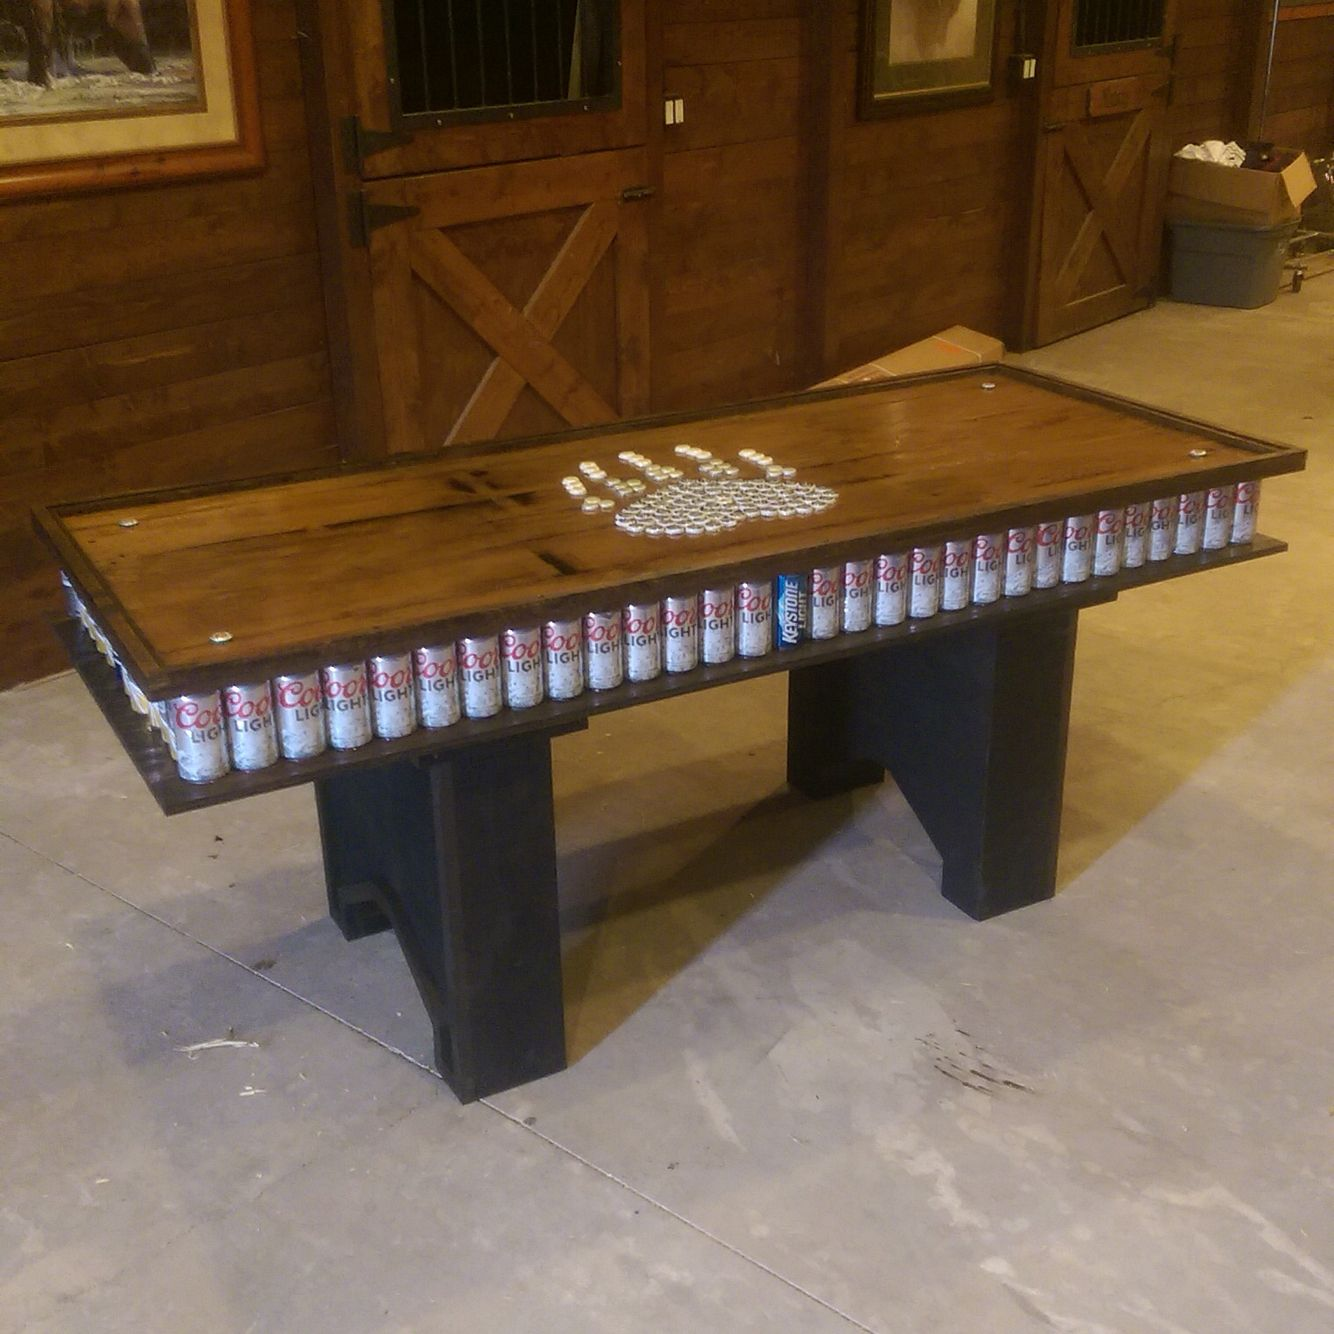 Homemade beer pong table - College Diy Wood Beer Pong Table